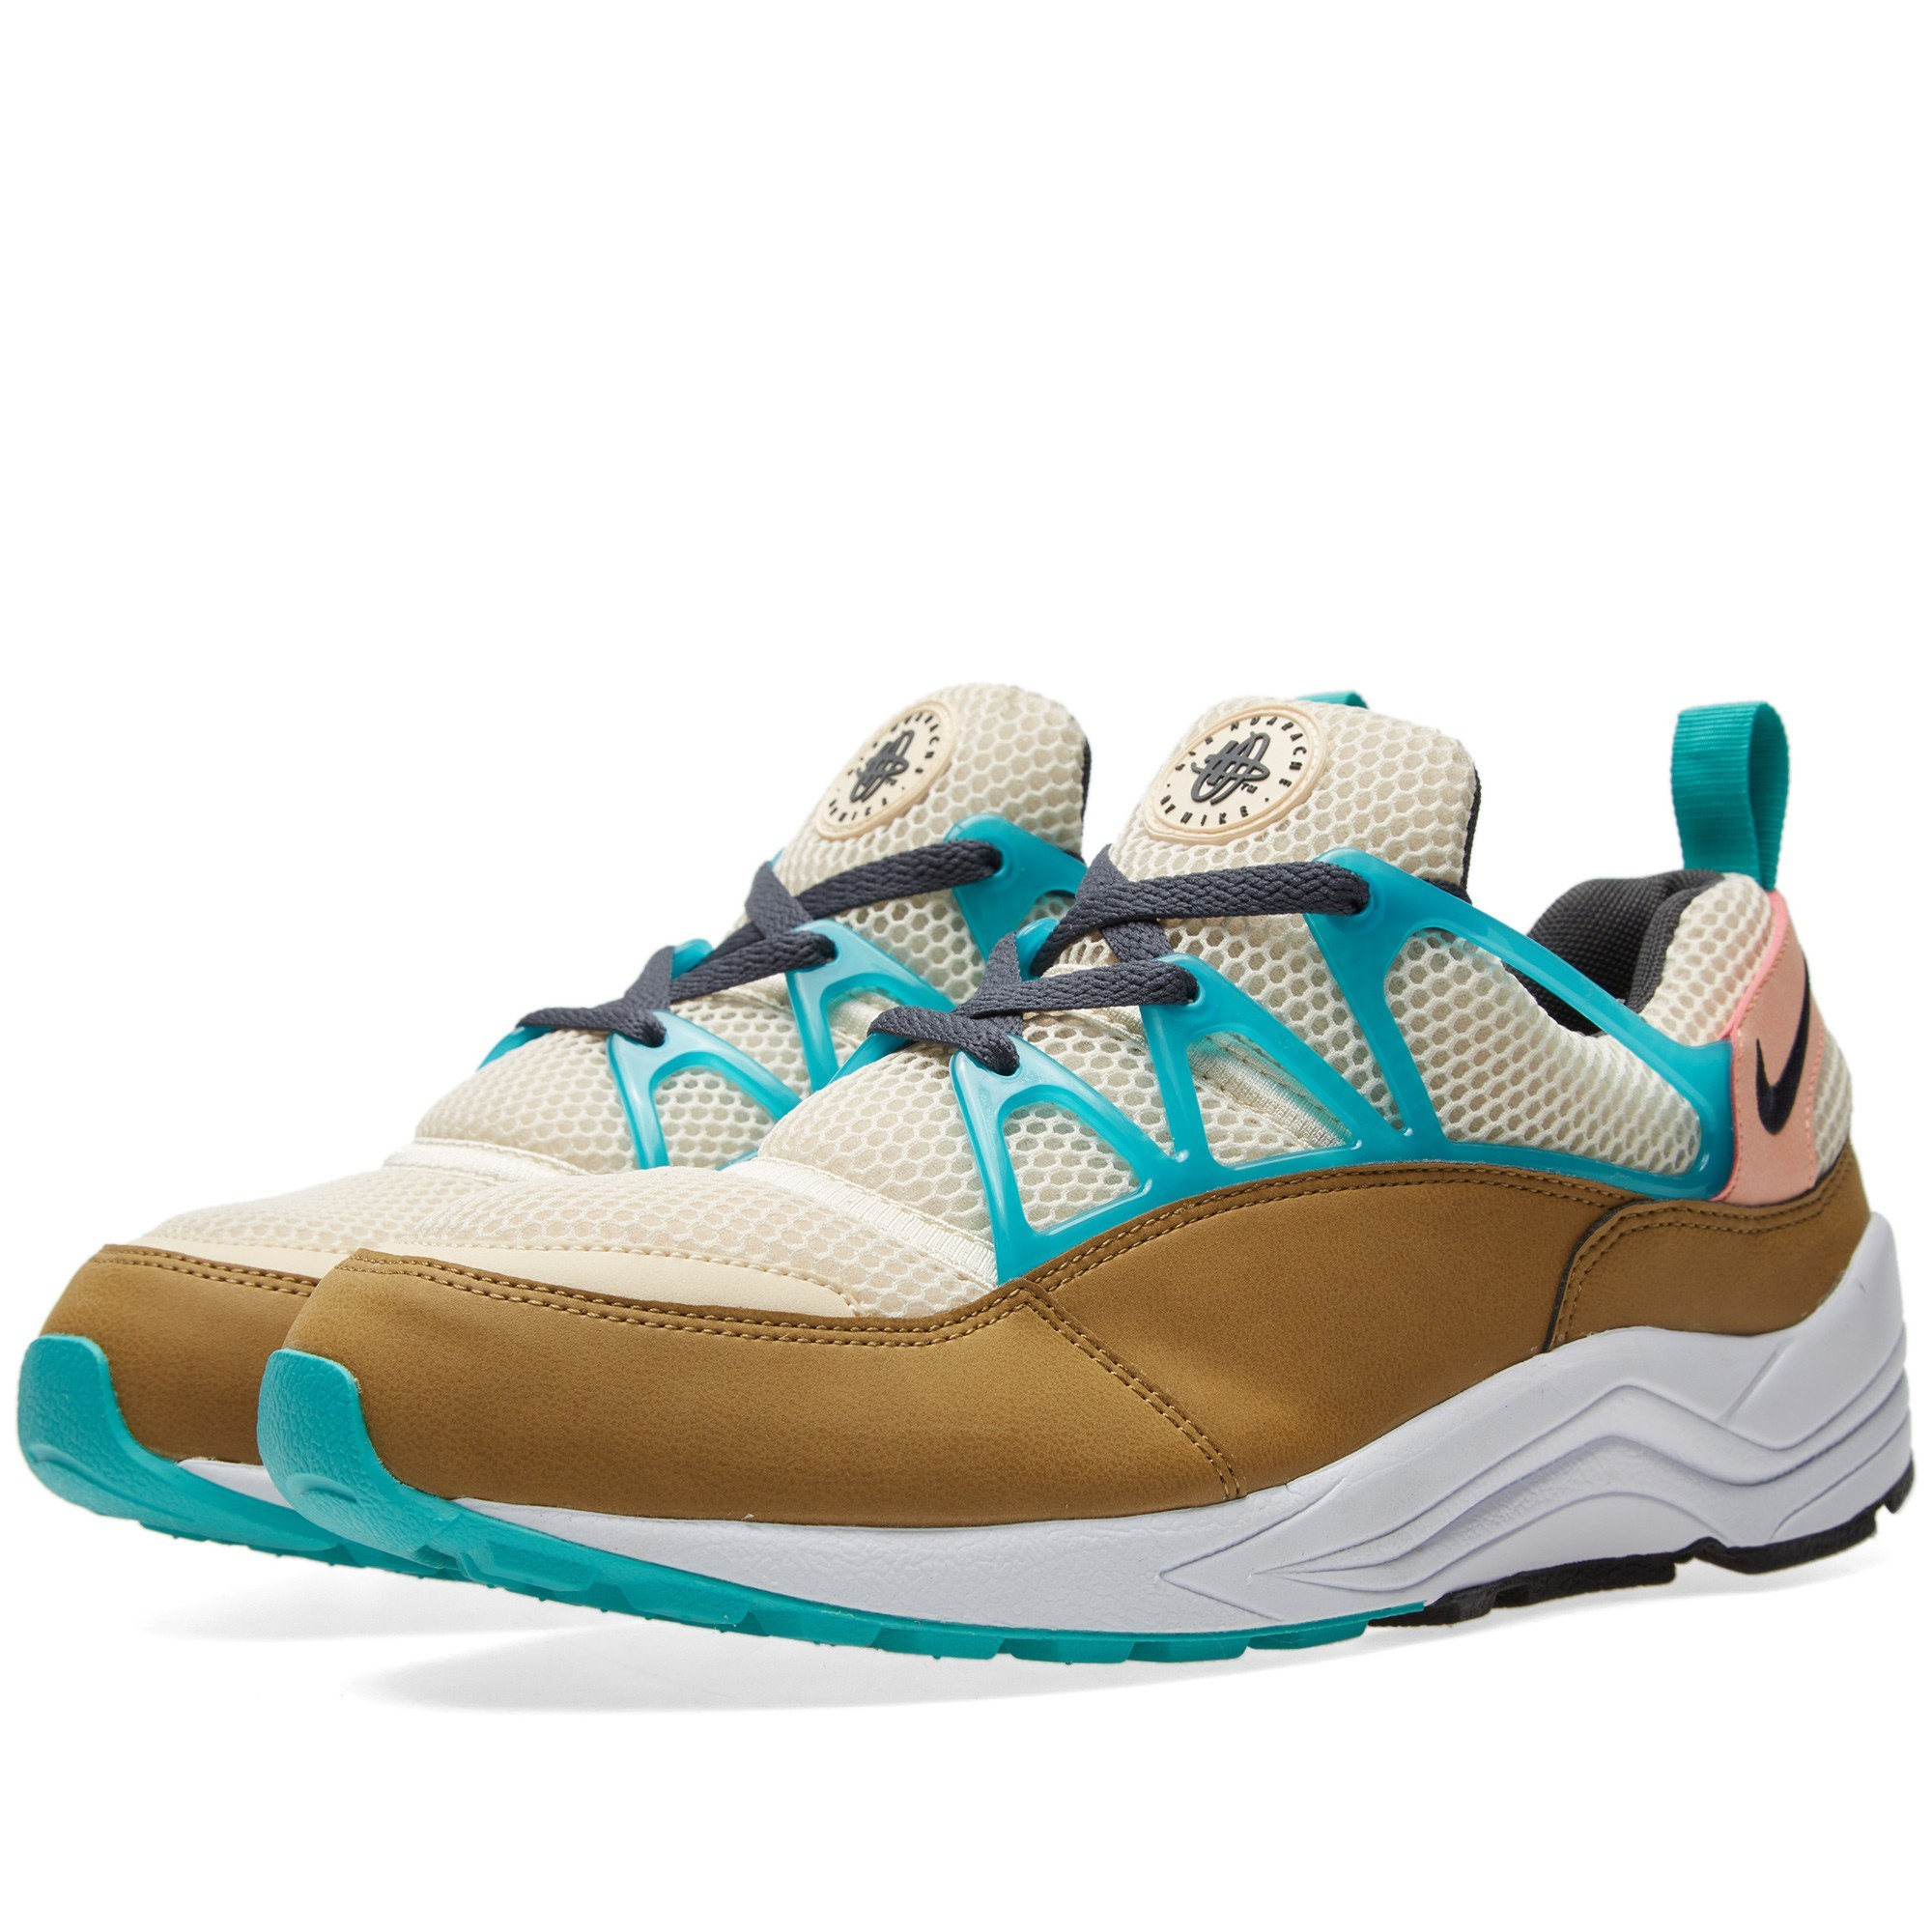 Nike Air Huarache Light FB Femmes Chaussures De Ville Opale Plat/Anthracite 725156-200